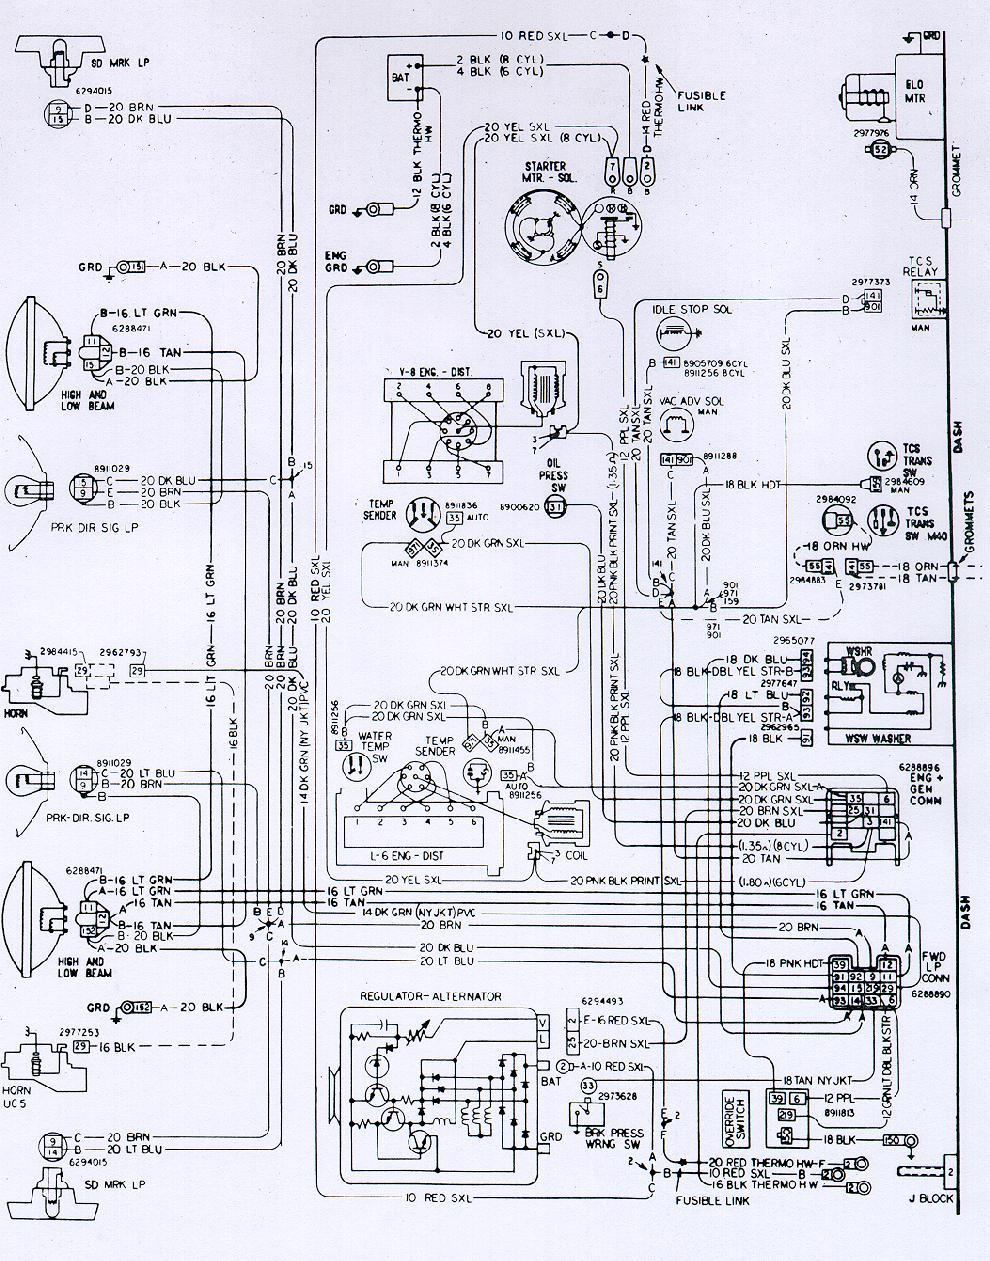 hight resolution of 67 camaro ignition wiring schematic wiring diagram third level 67 camaro steering column wiring diagrams 1967